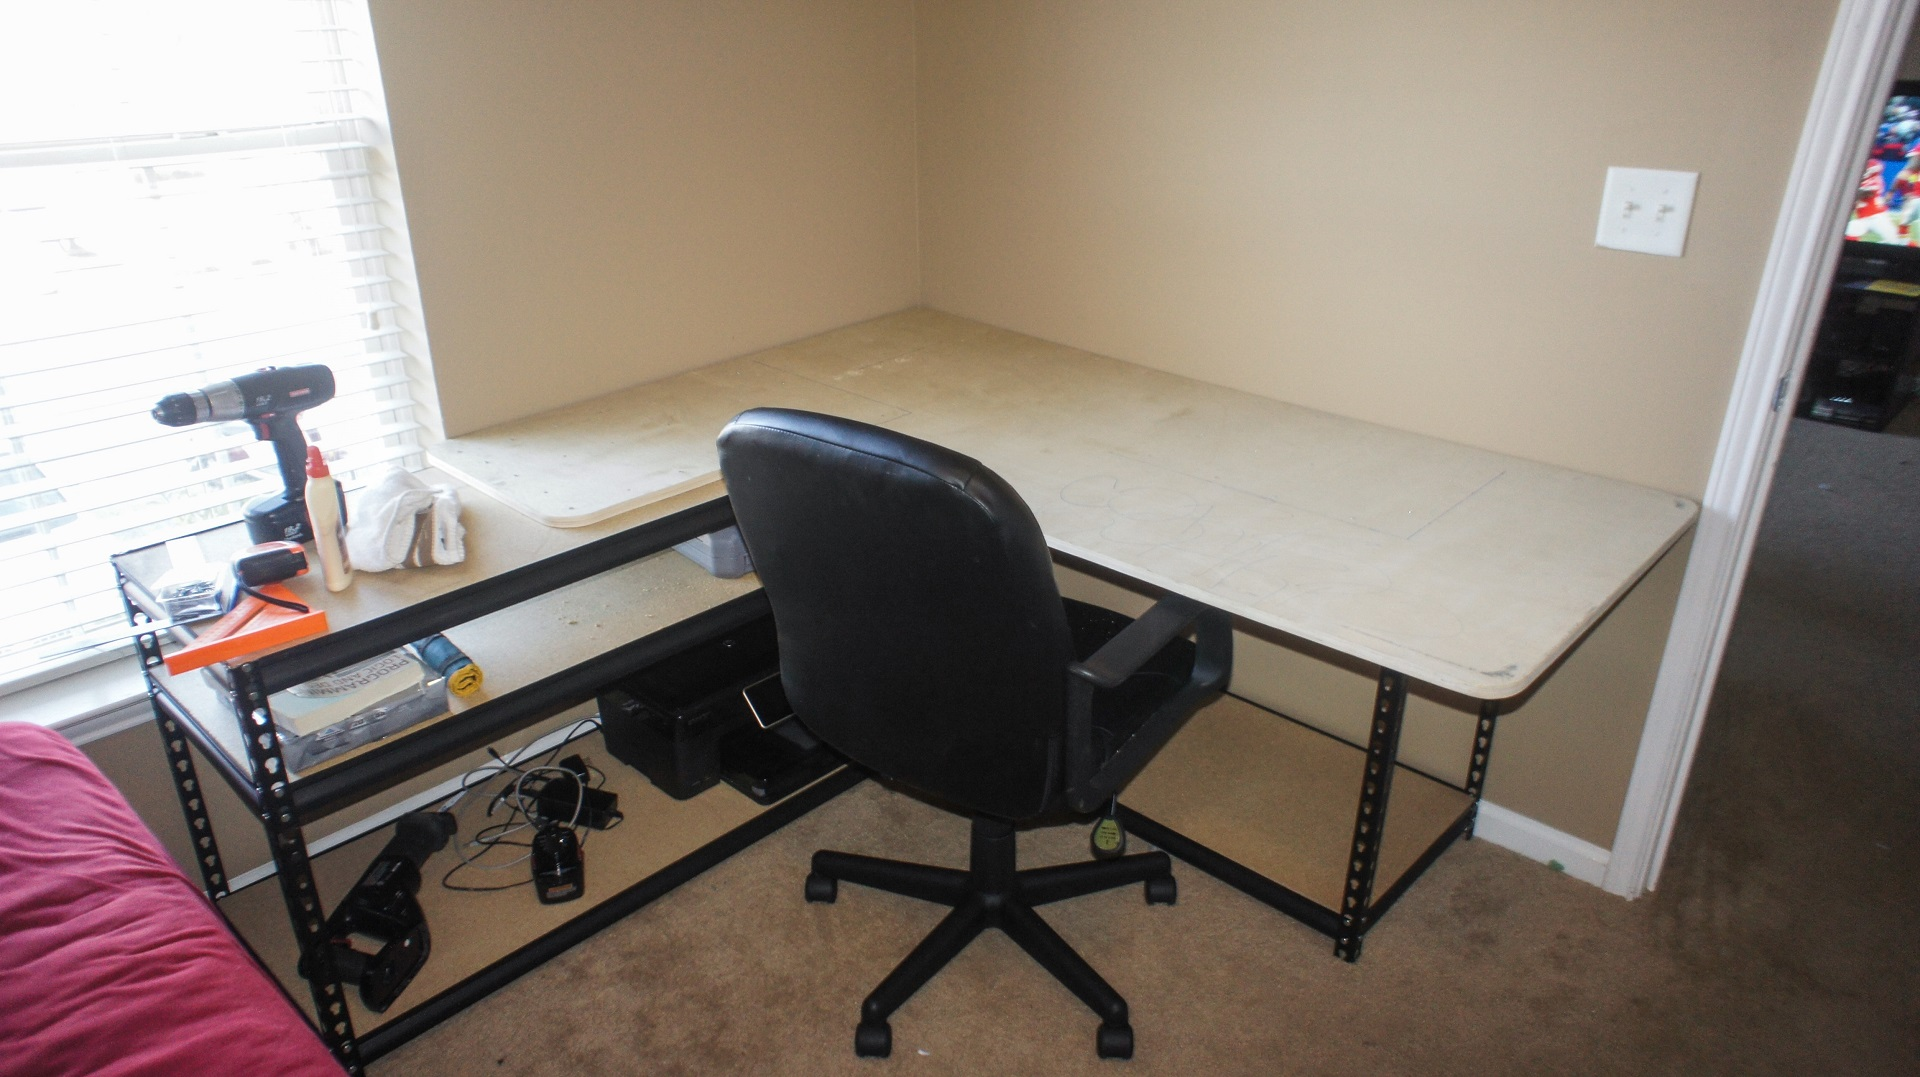 New desk almost done, just missing the cork board.